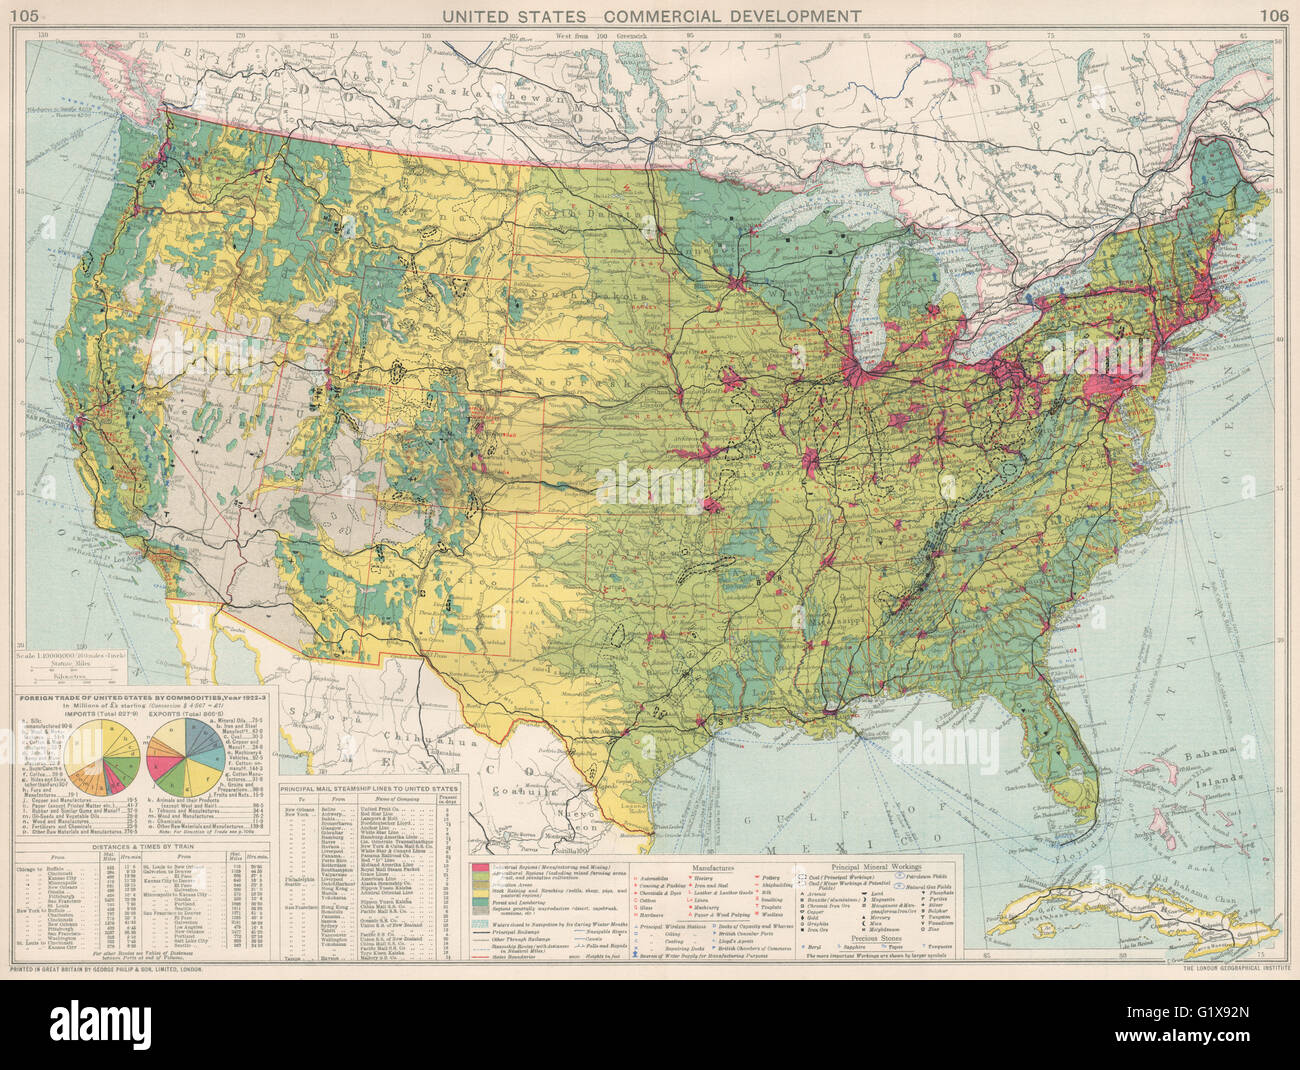 United States Commercial Development Industrial Manufacturing - Where Are The Industrial On The Us Map